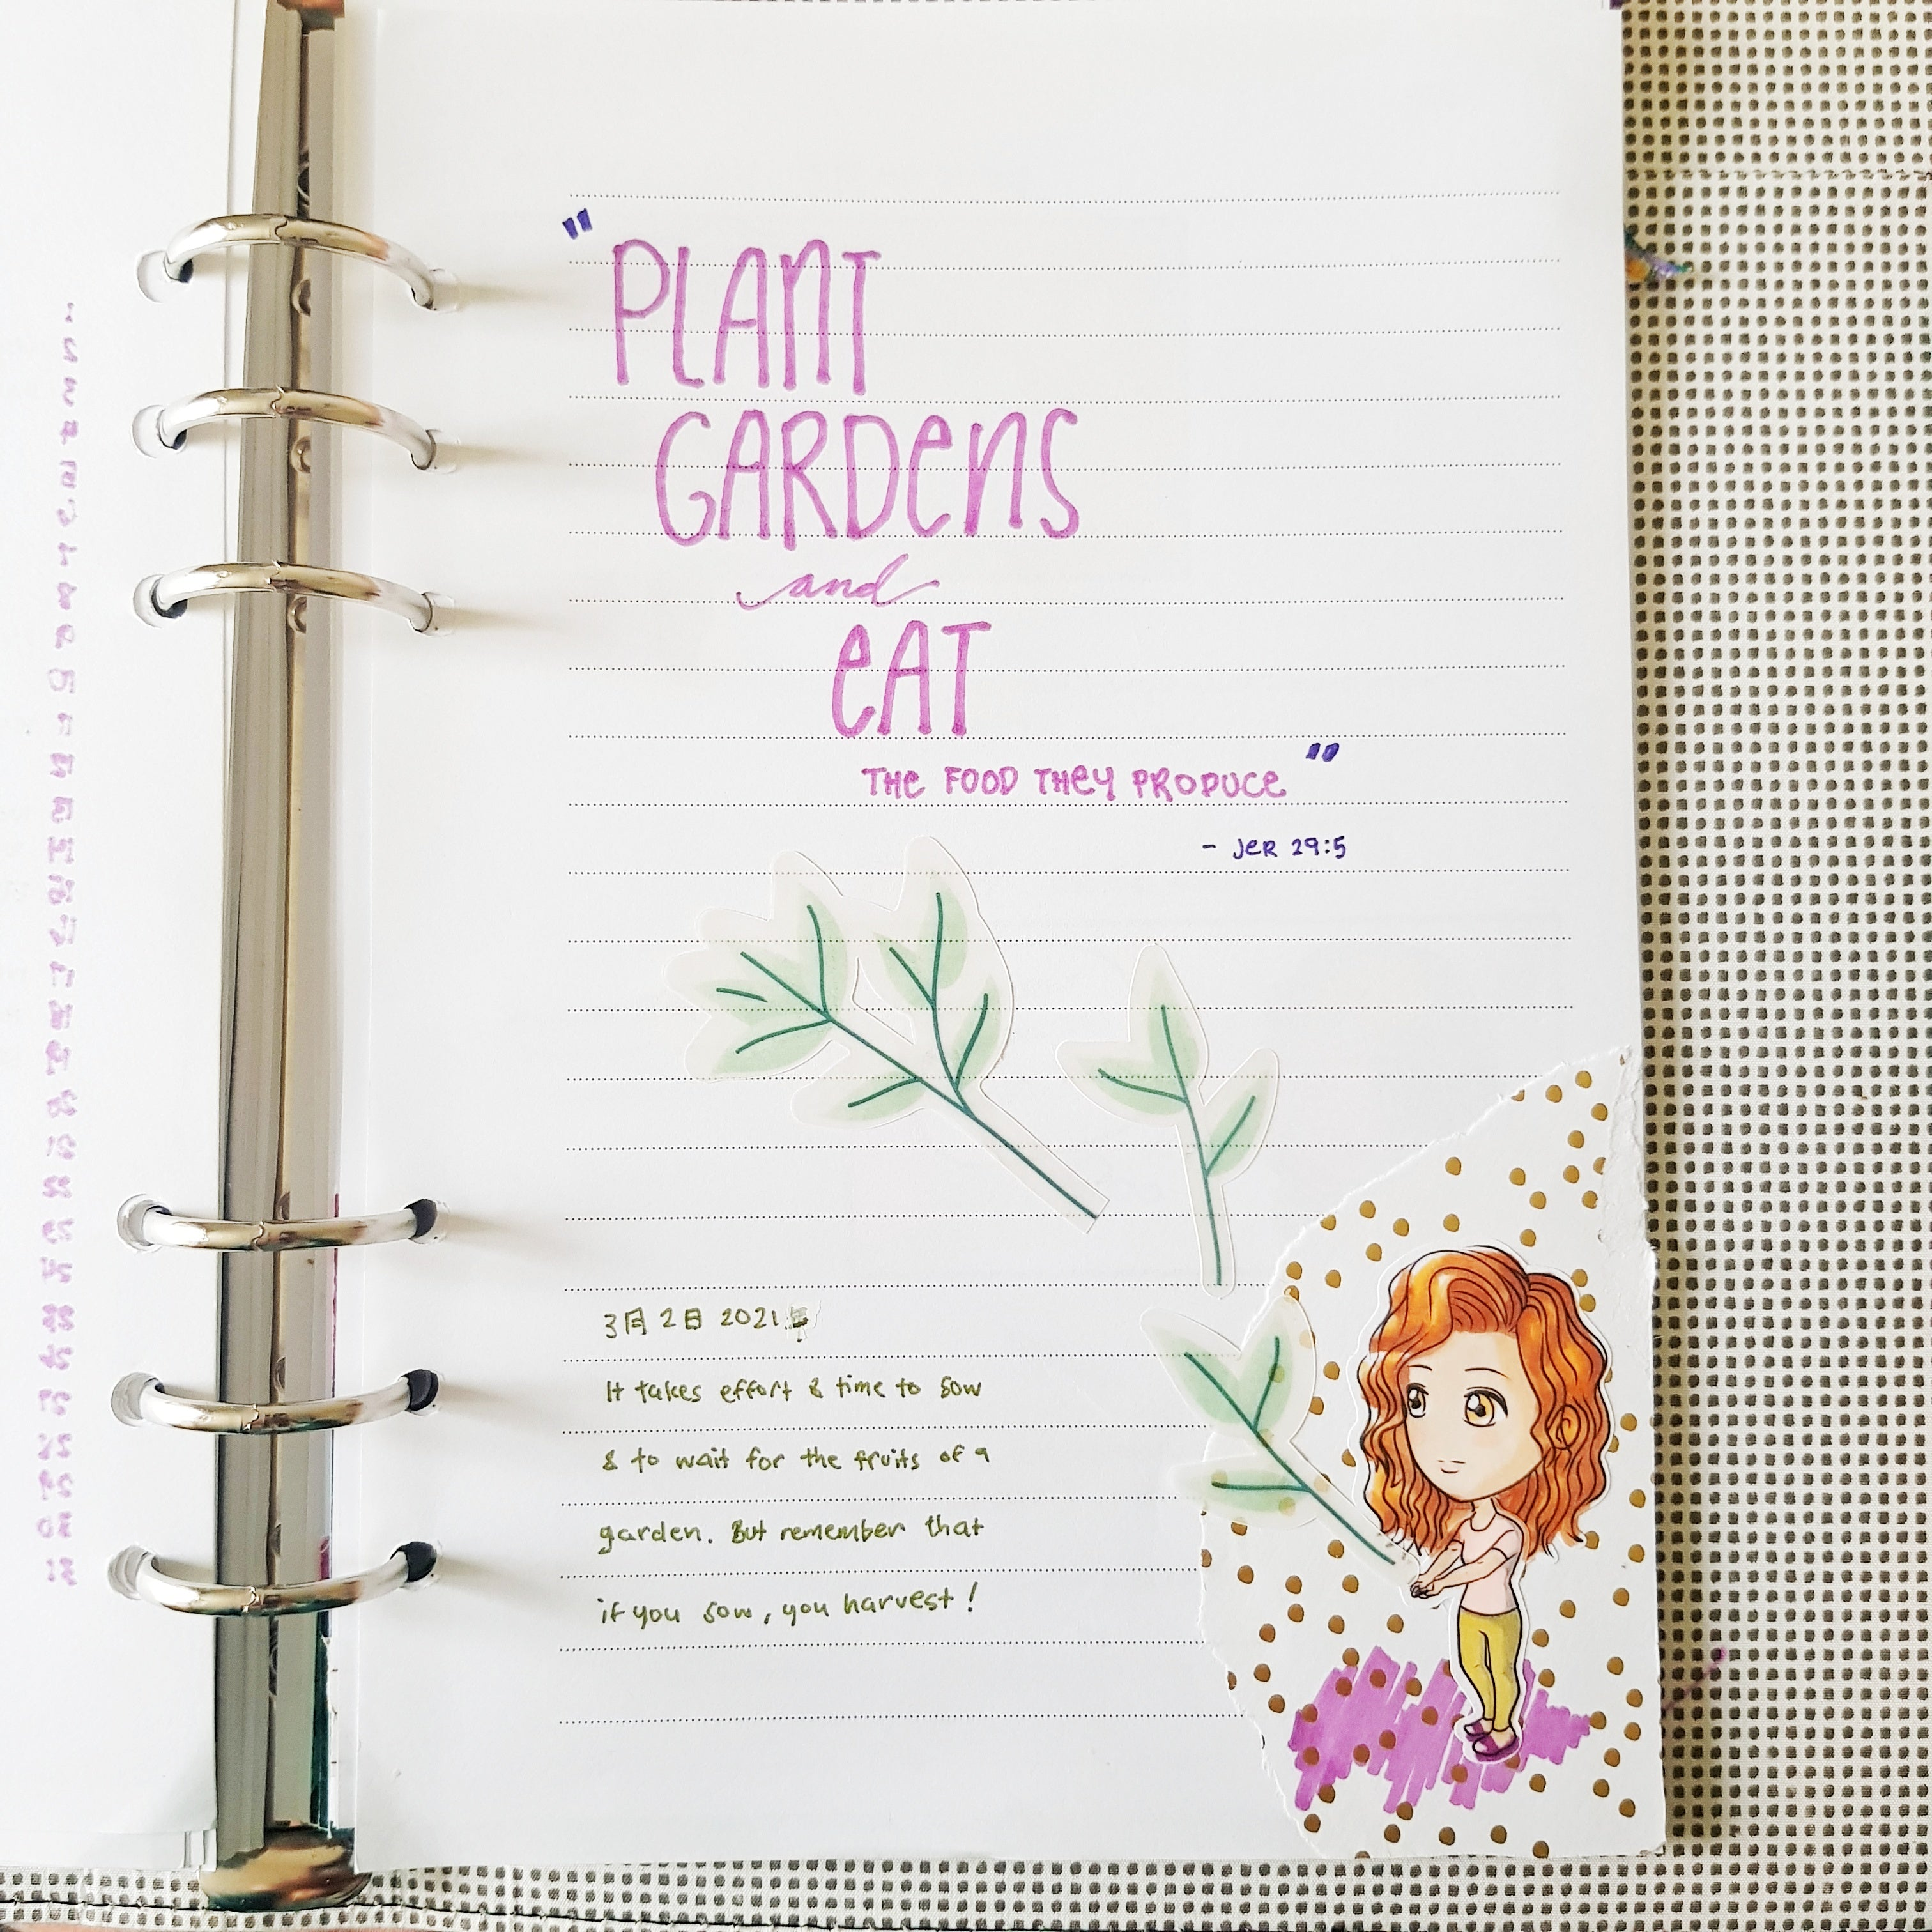 Plant gardens and eat the food they produce